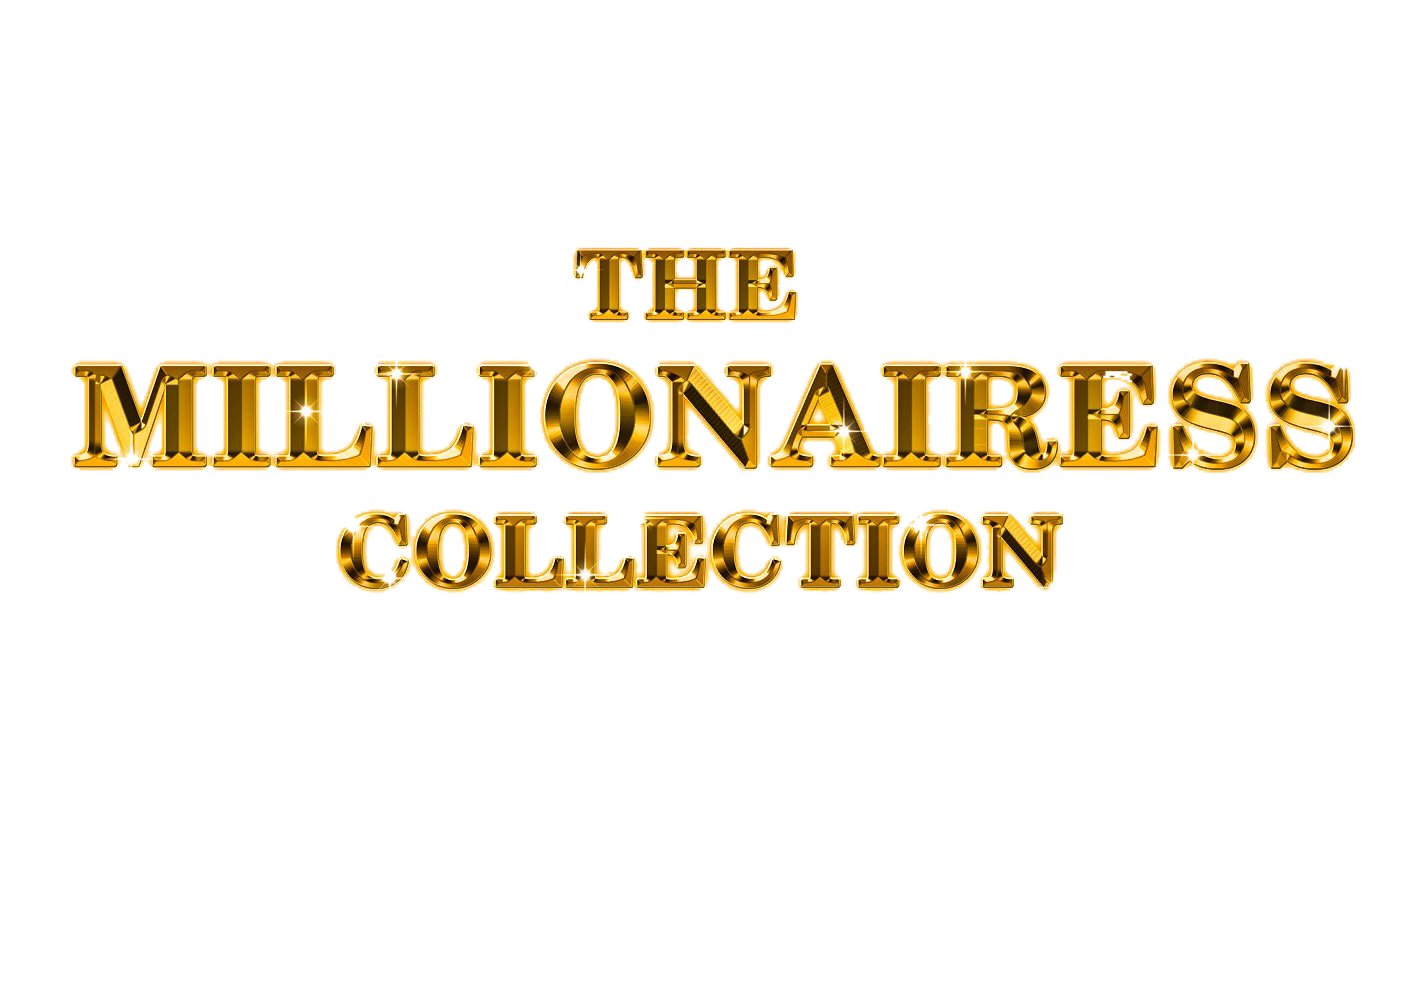 THE MILLIONAIRESS COLLECTION